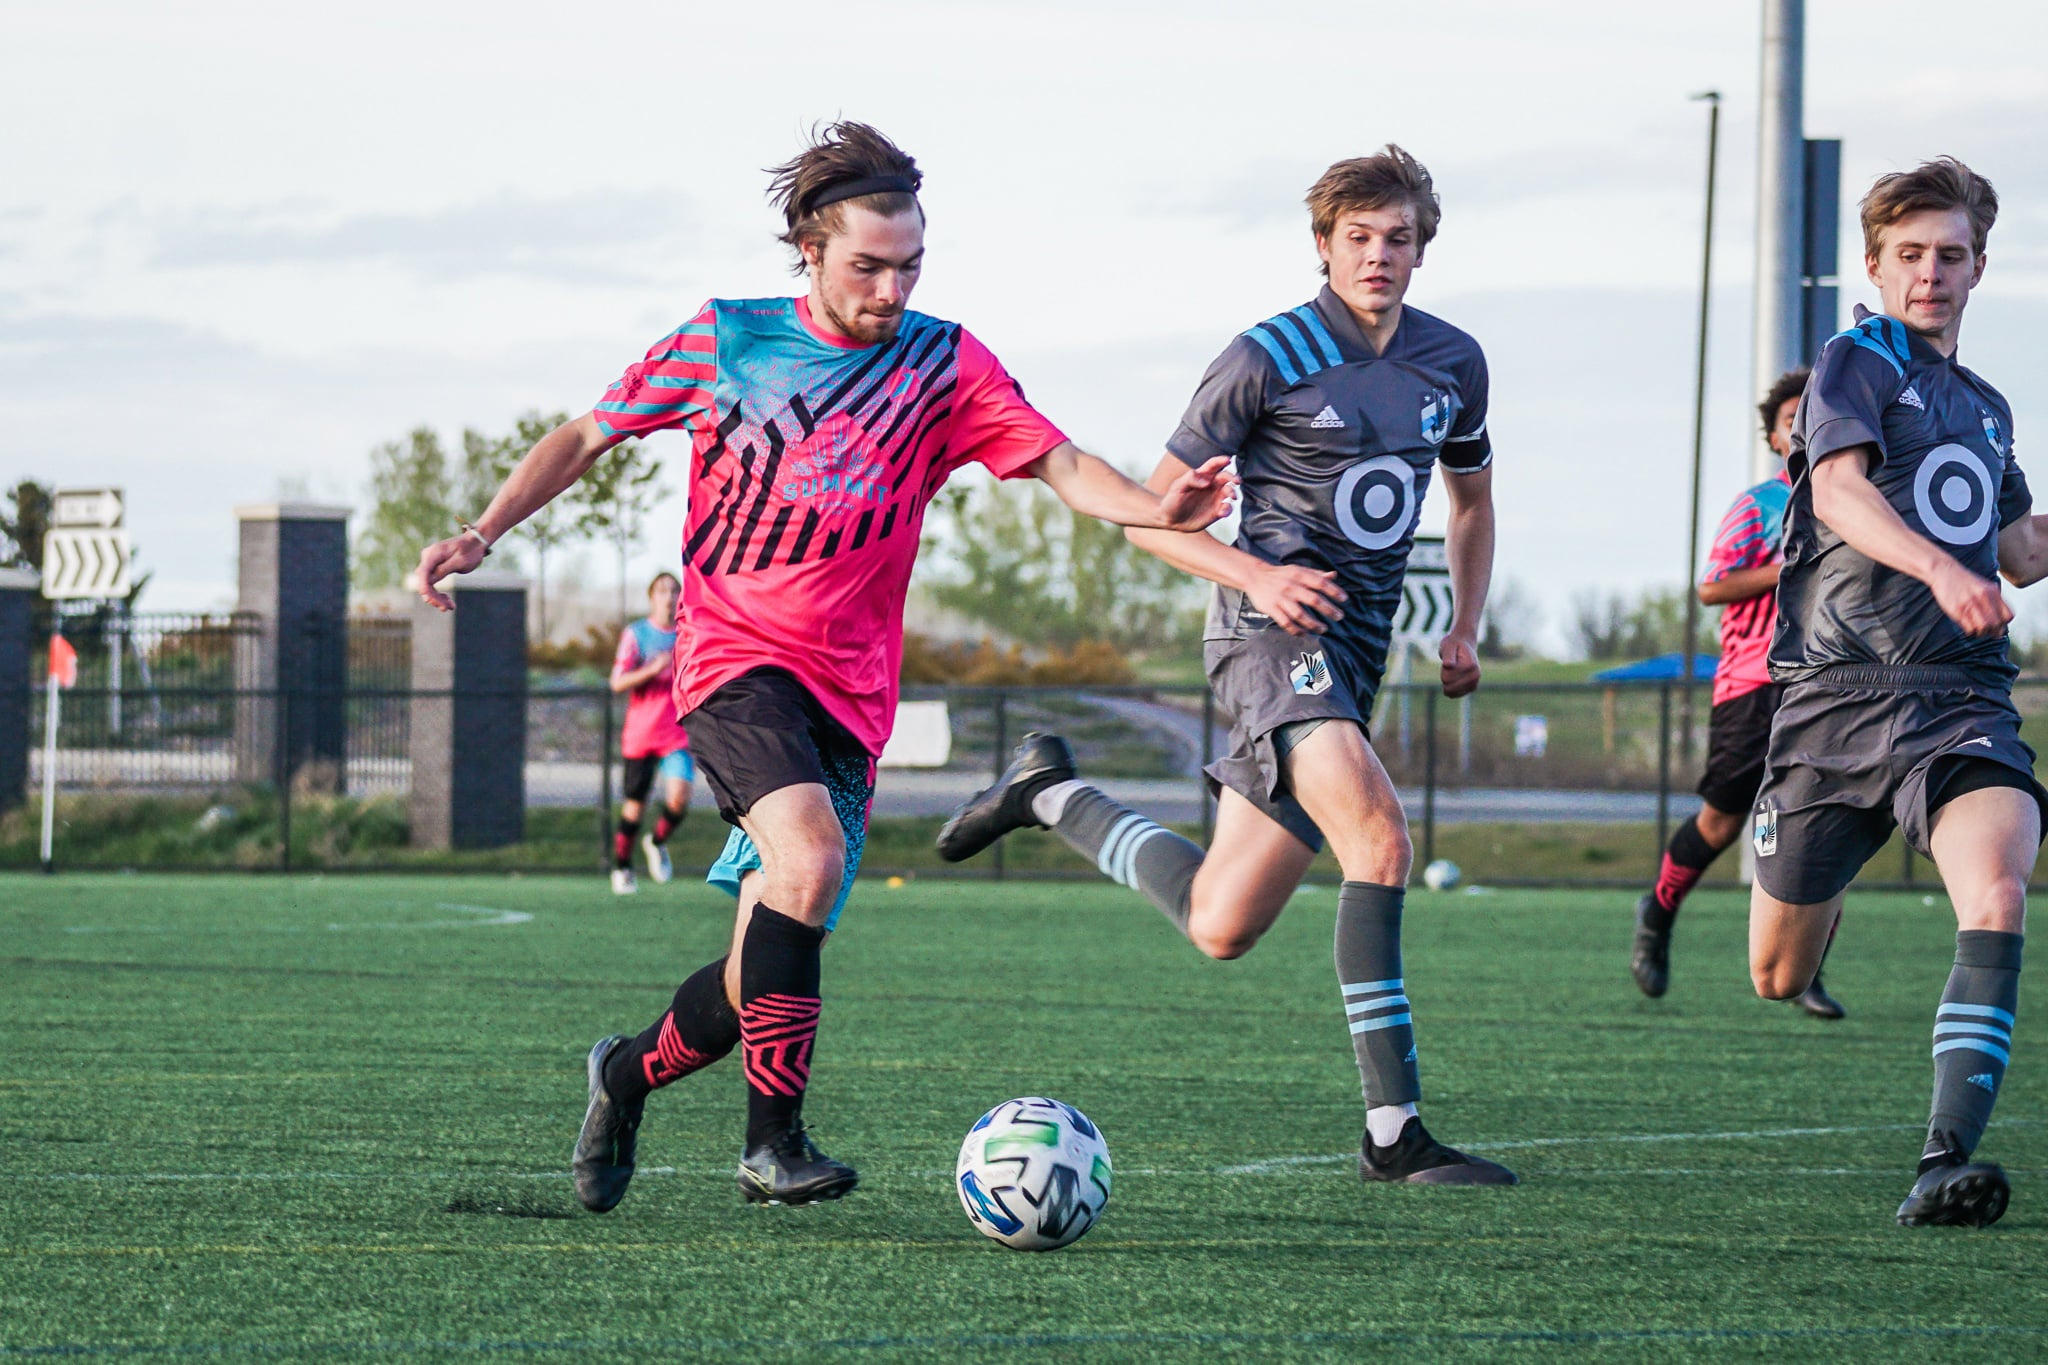 Zach Susee of Minneapolis City Futures drives toward goal against Minnesota United in the Crows' 3-2 win over the Loons